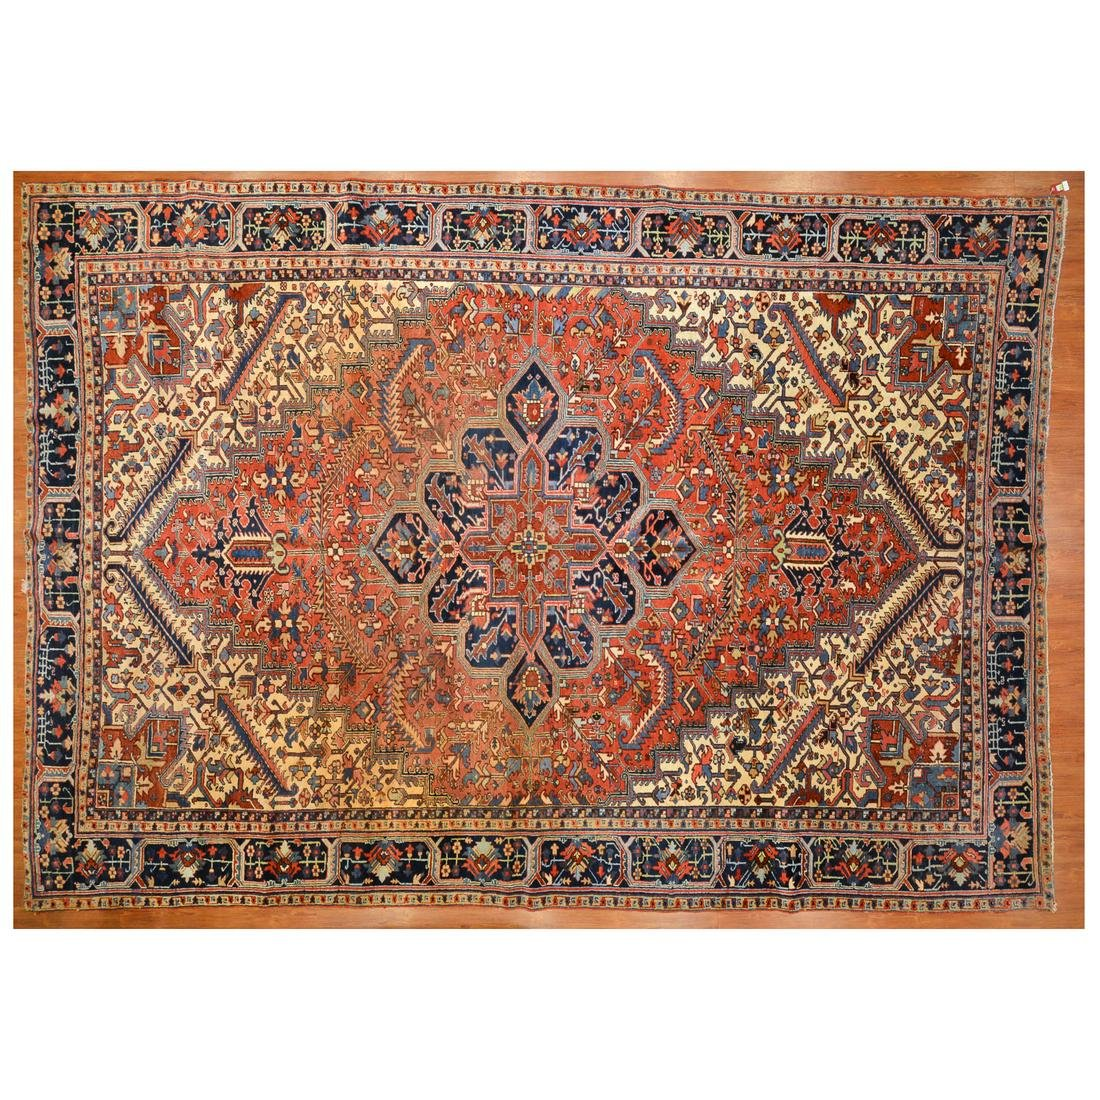 Semi-Antique Heriz Carpet, Persia, 10.9 x 15